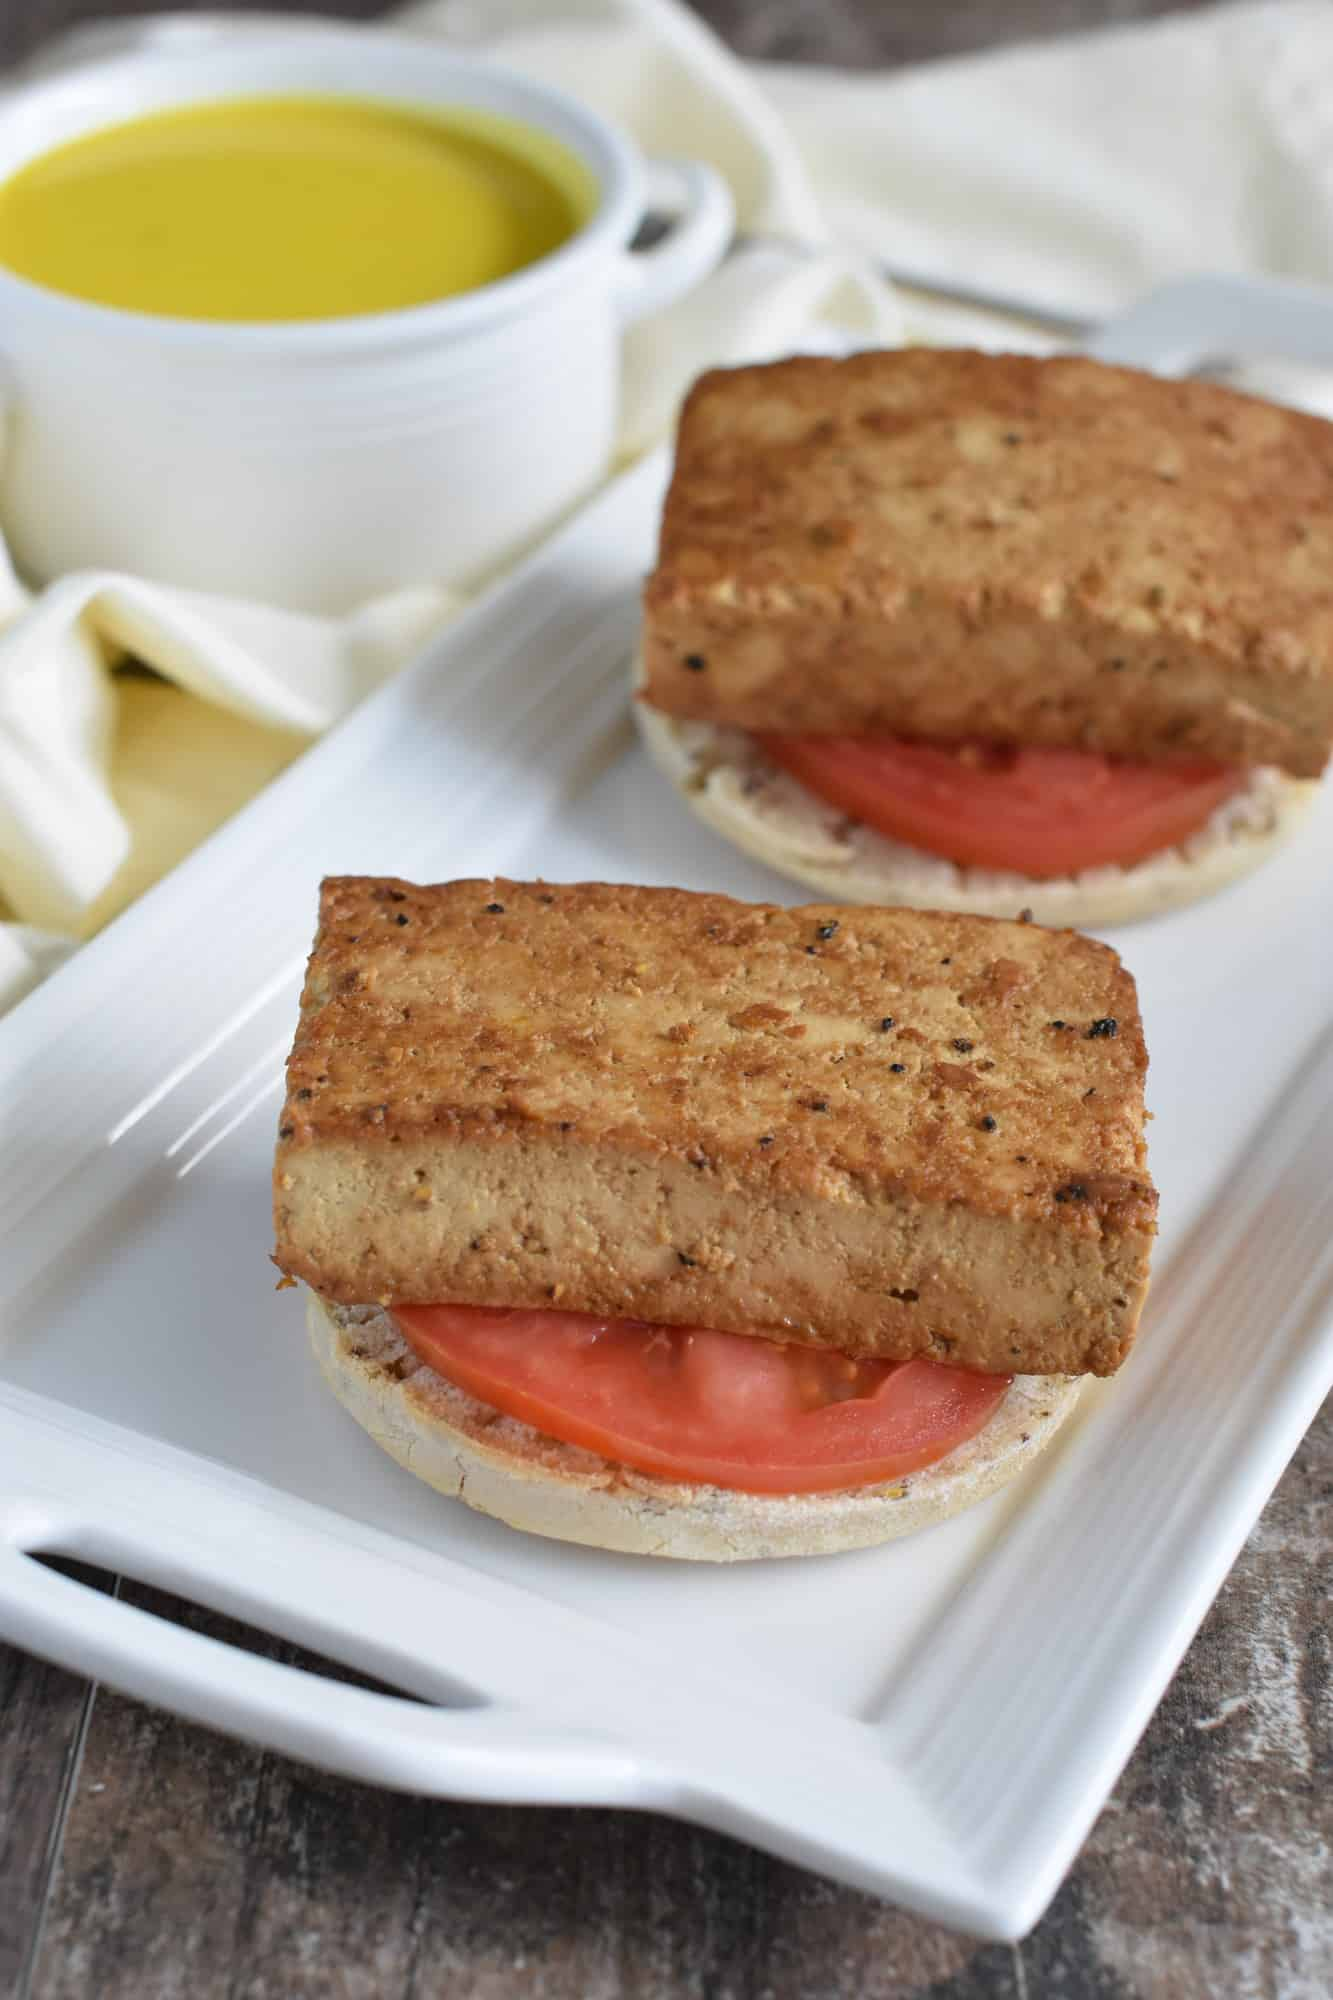 Two English muffins topped with tomato slices and tofu patties